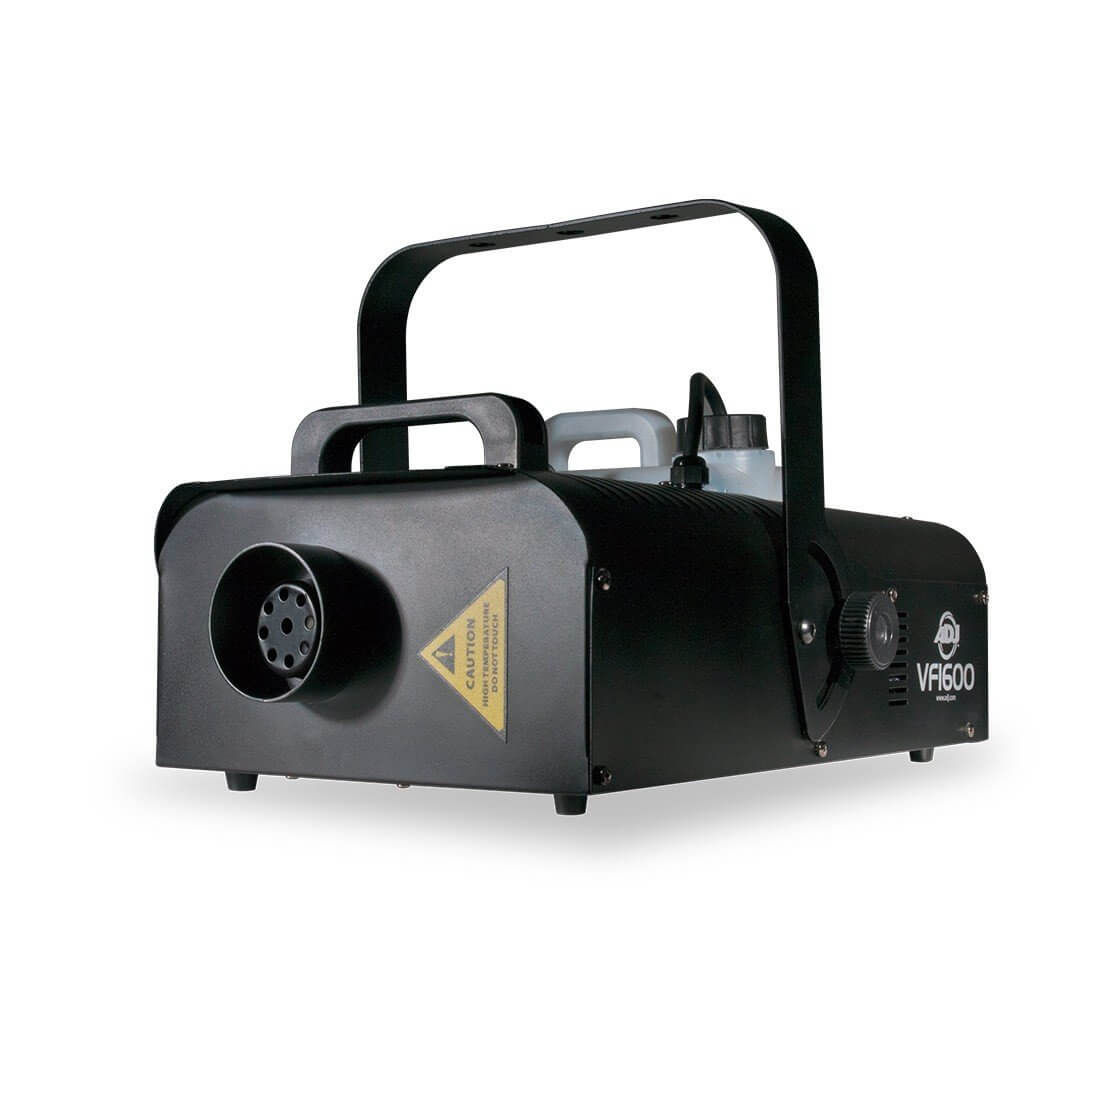 ADJ VF1600 Smoke Machine 1500W inc Timer & Wireless Remote